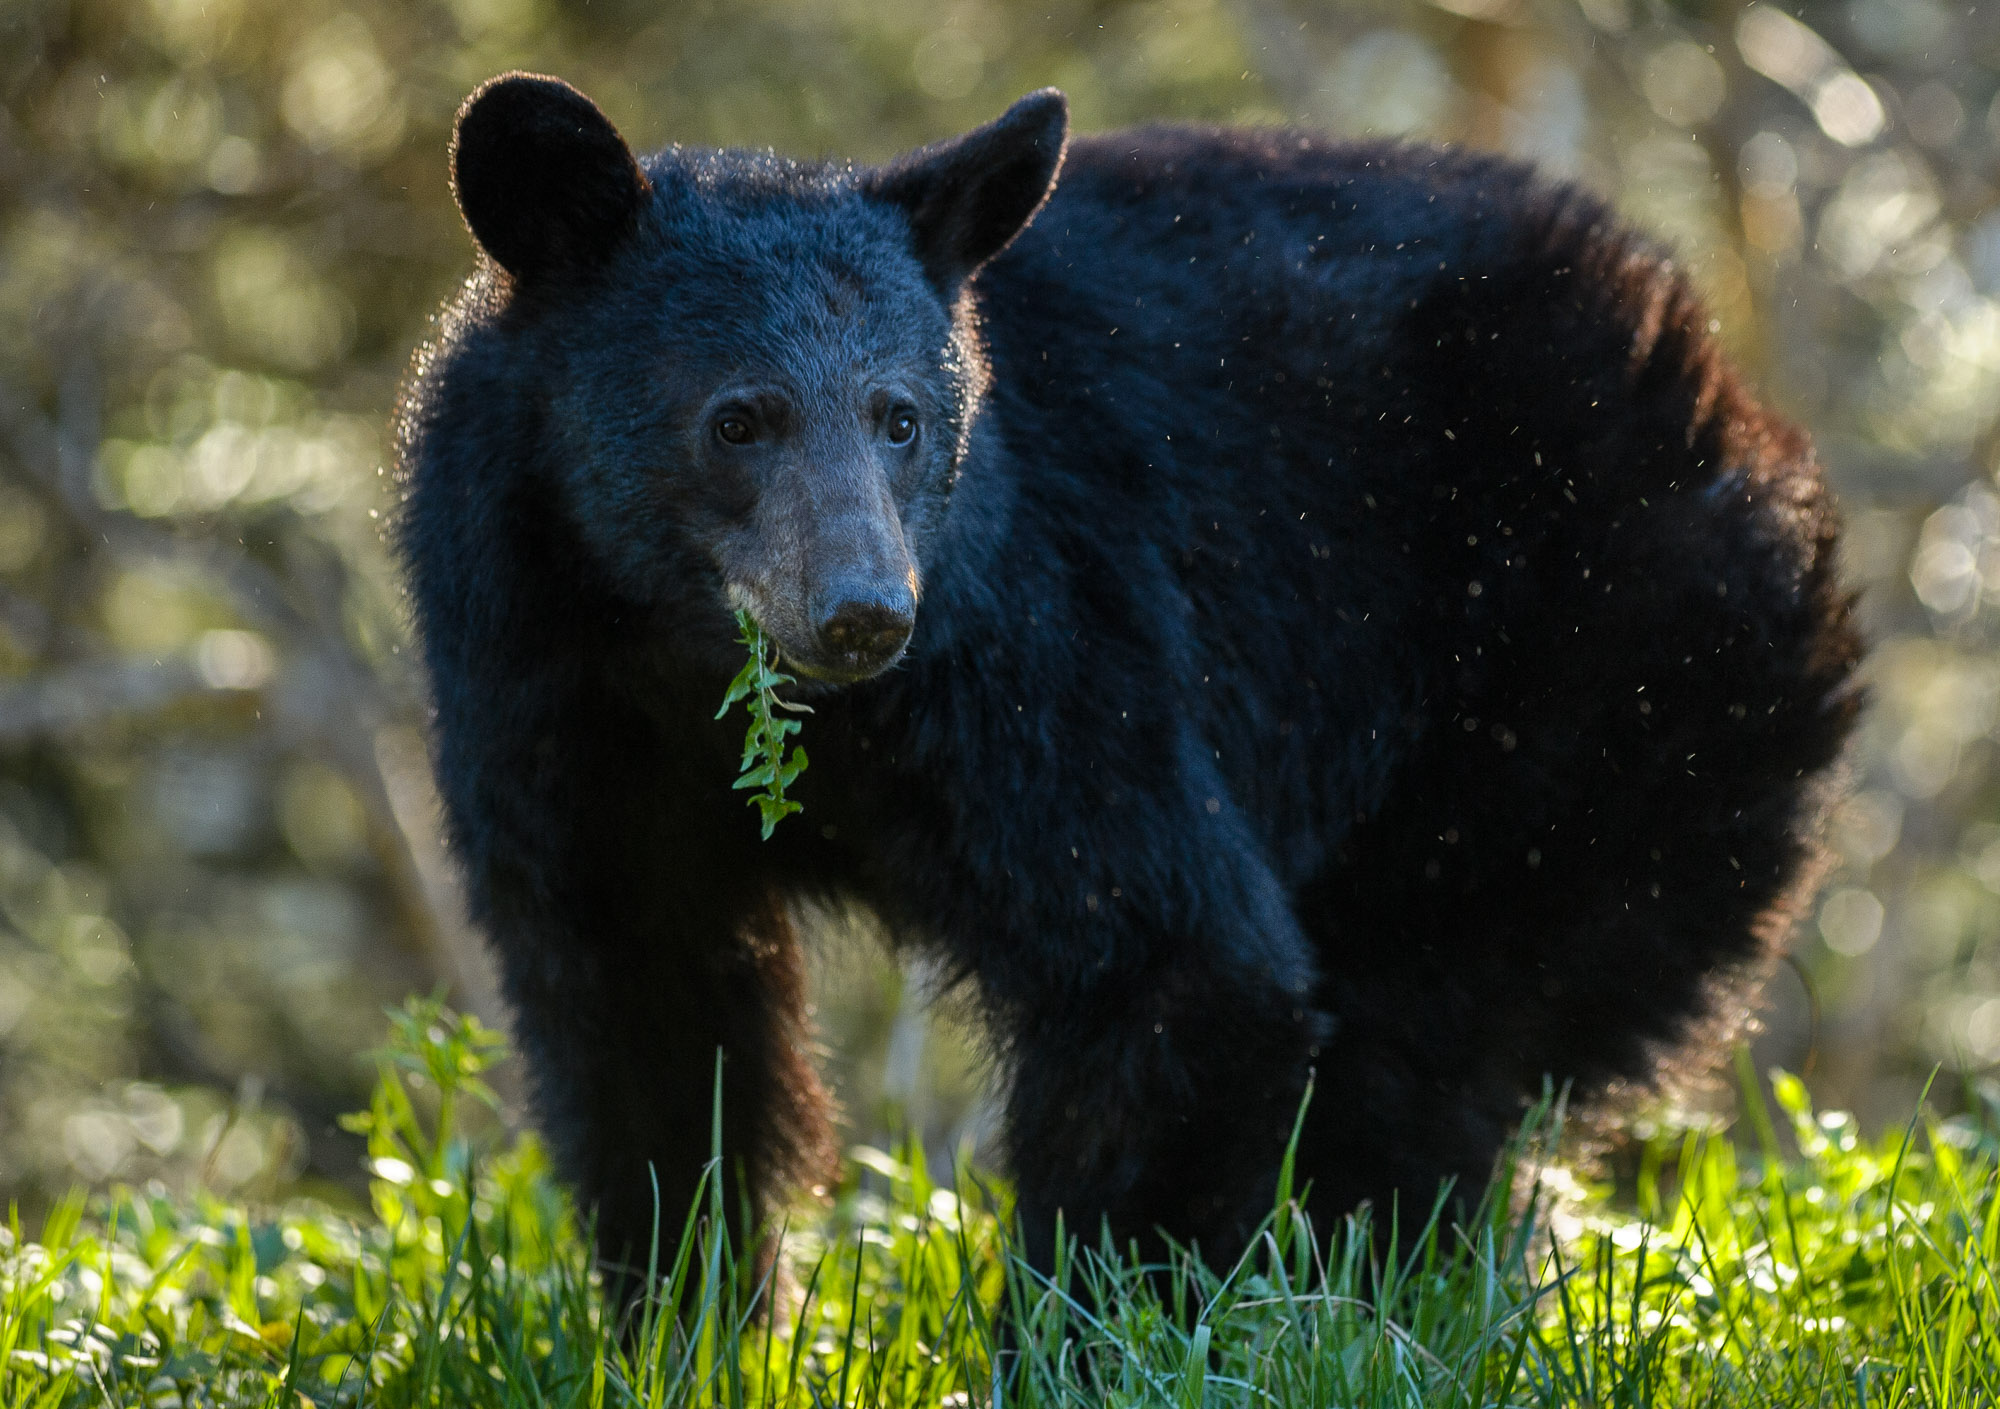 If you  want  to find a black bear, try Great Smoky Mountains National Park. It has more of them per square mile than any other place in the U.S. Nikon D3S,  Nikon 80-200mm f/2.8  lens at 200mm. Photo © 2013 Chris Nicholson. (He doesn't have any night photos of light-painted bears. I can't understand why.)